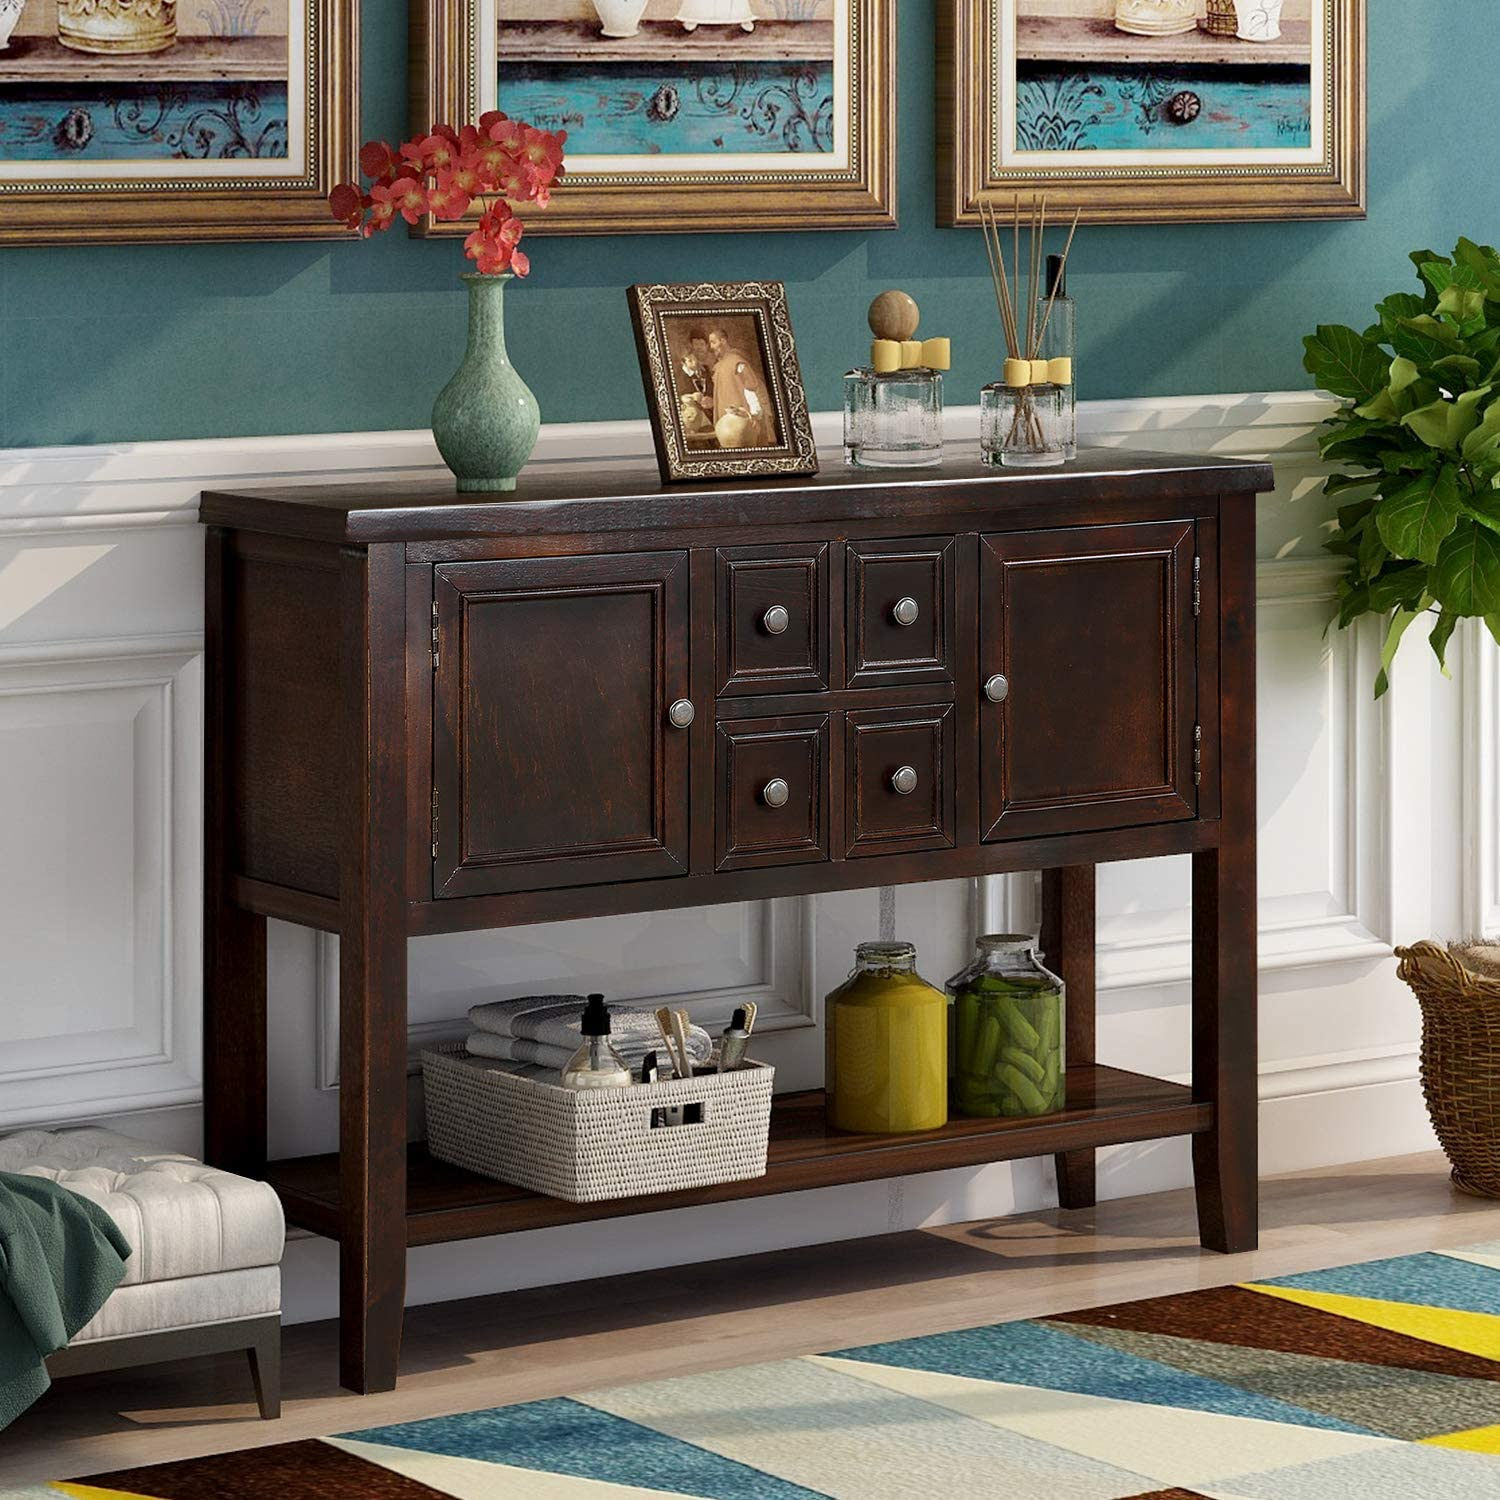 Buffet Sideboard Retro Style Wood Special online shop Campaign Console Table with Bottom Shel